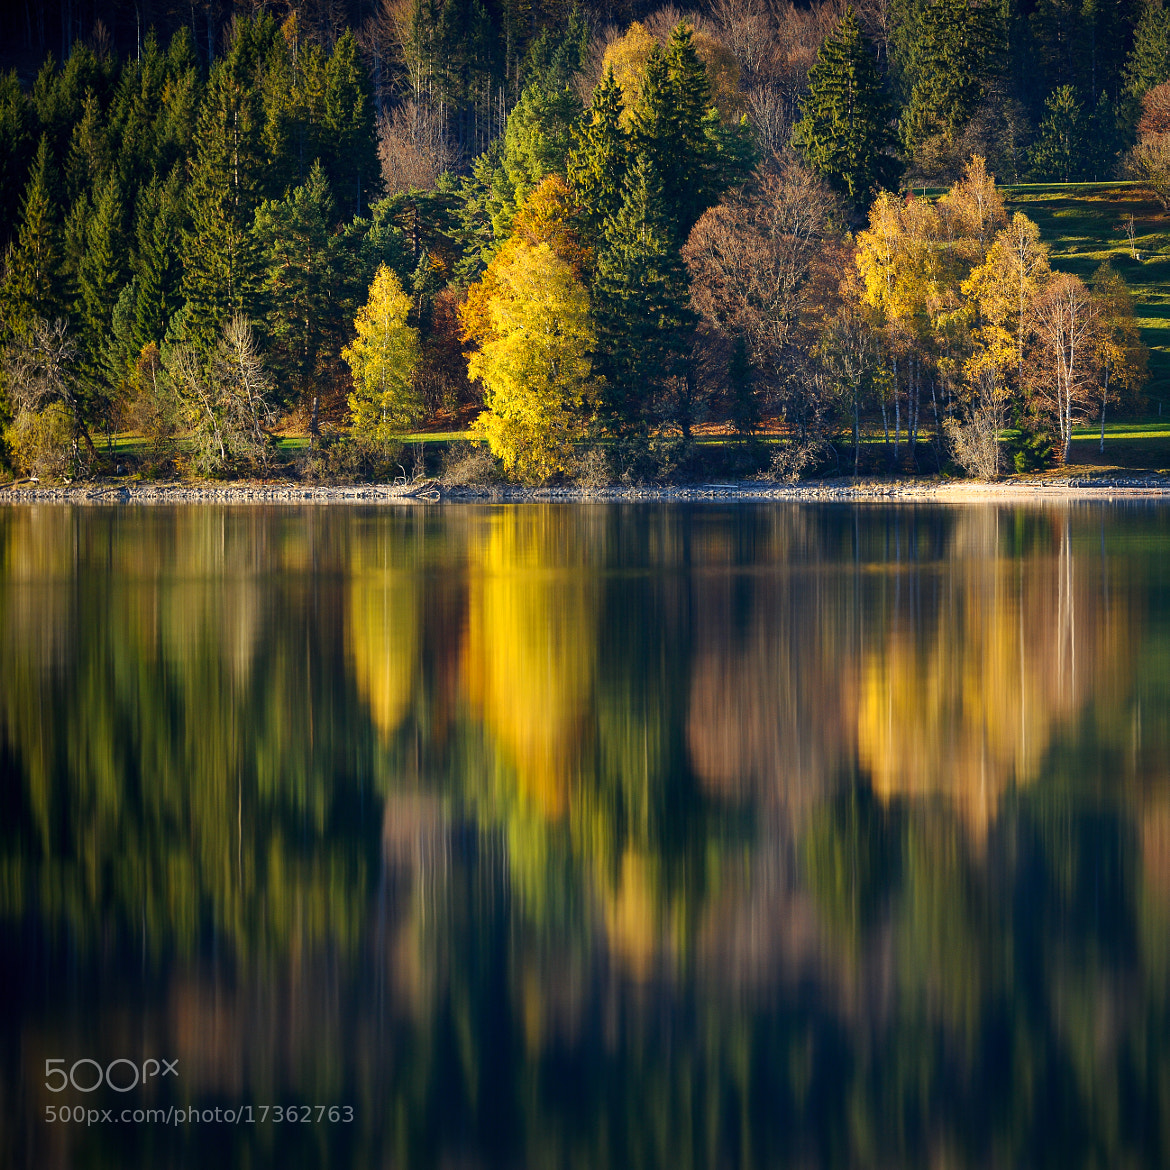 Photograph Autumn reflections by Gianluca Lastoria on 500px